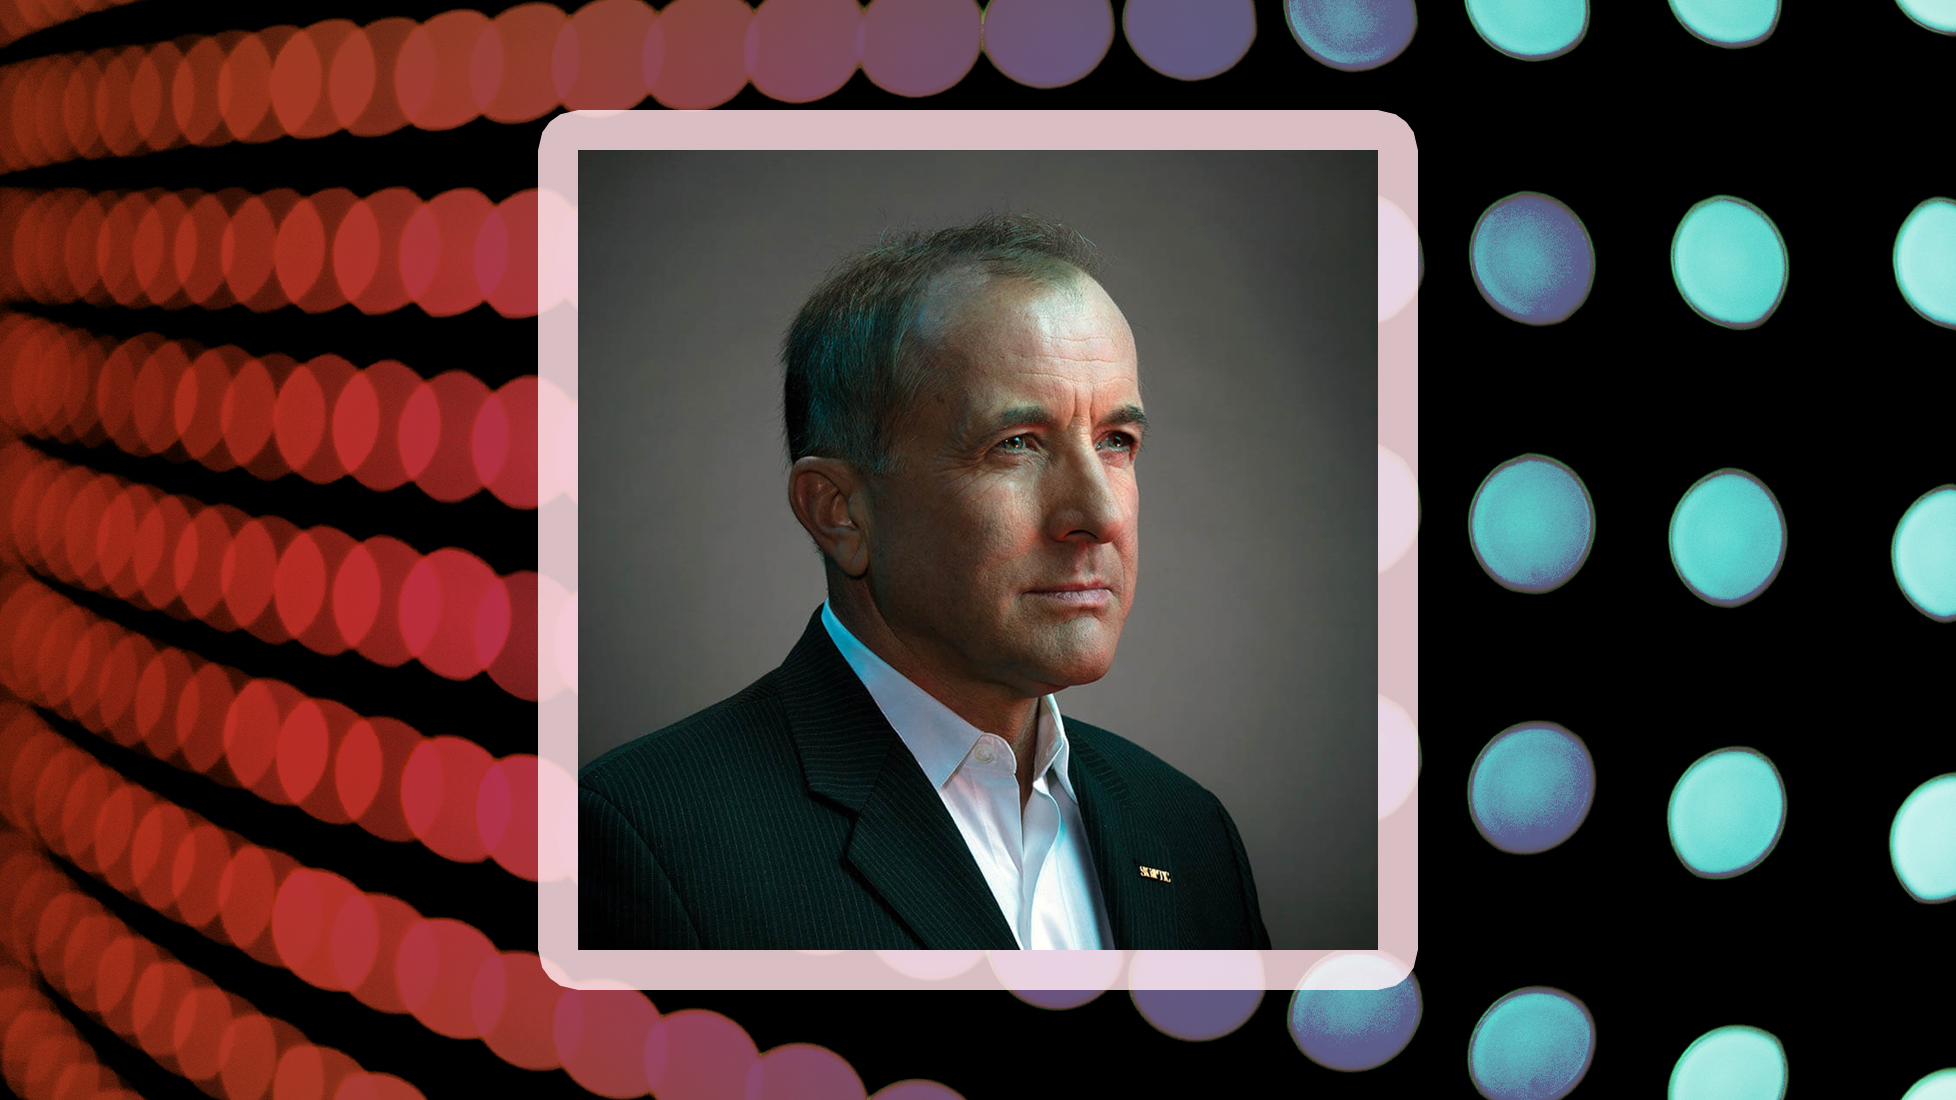 Books That Make You podcast image of Dr. Michael Shermer